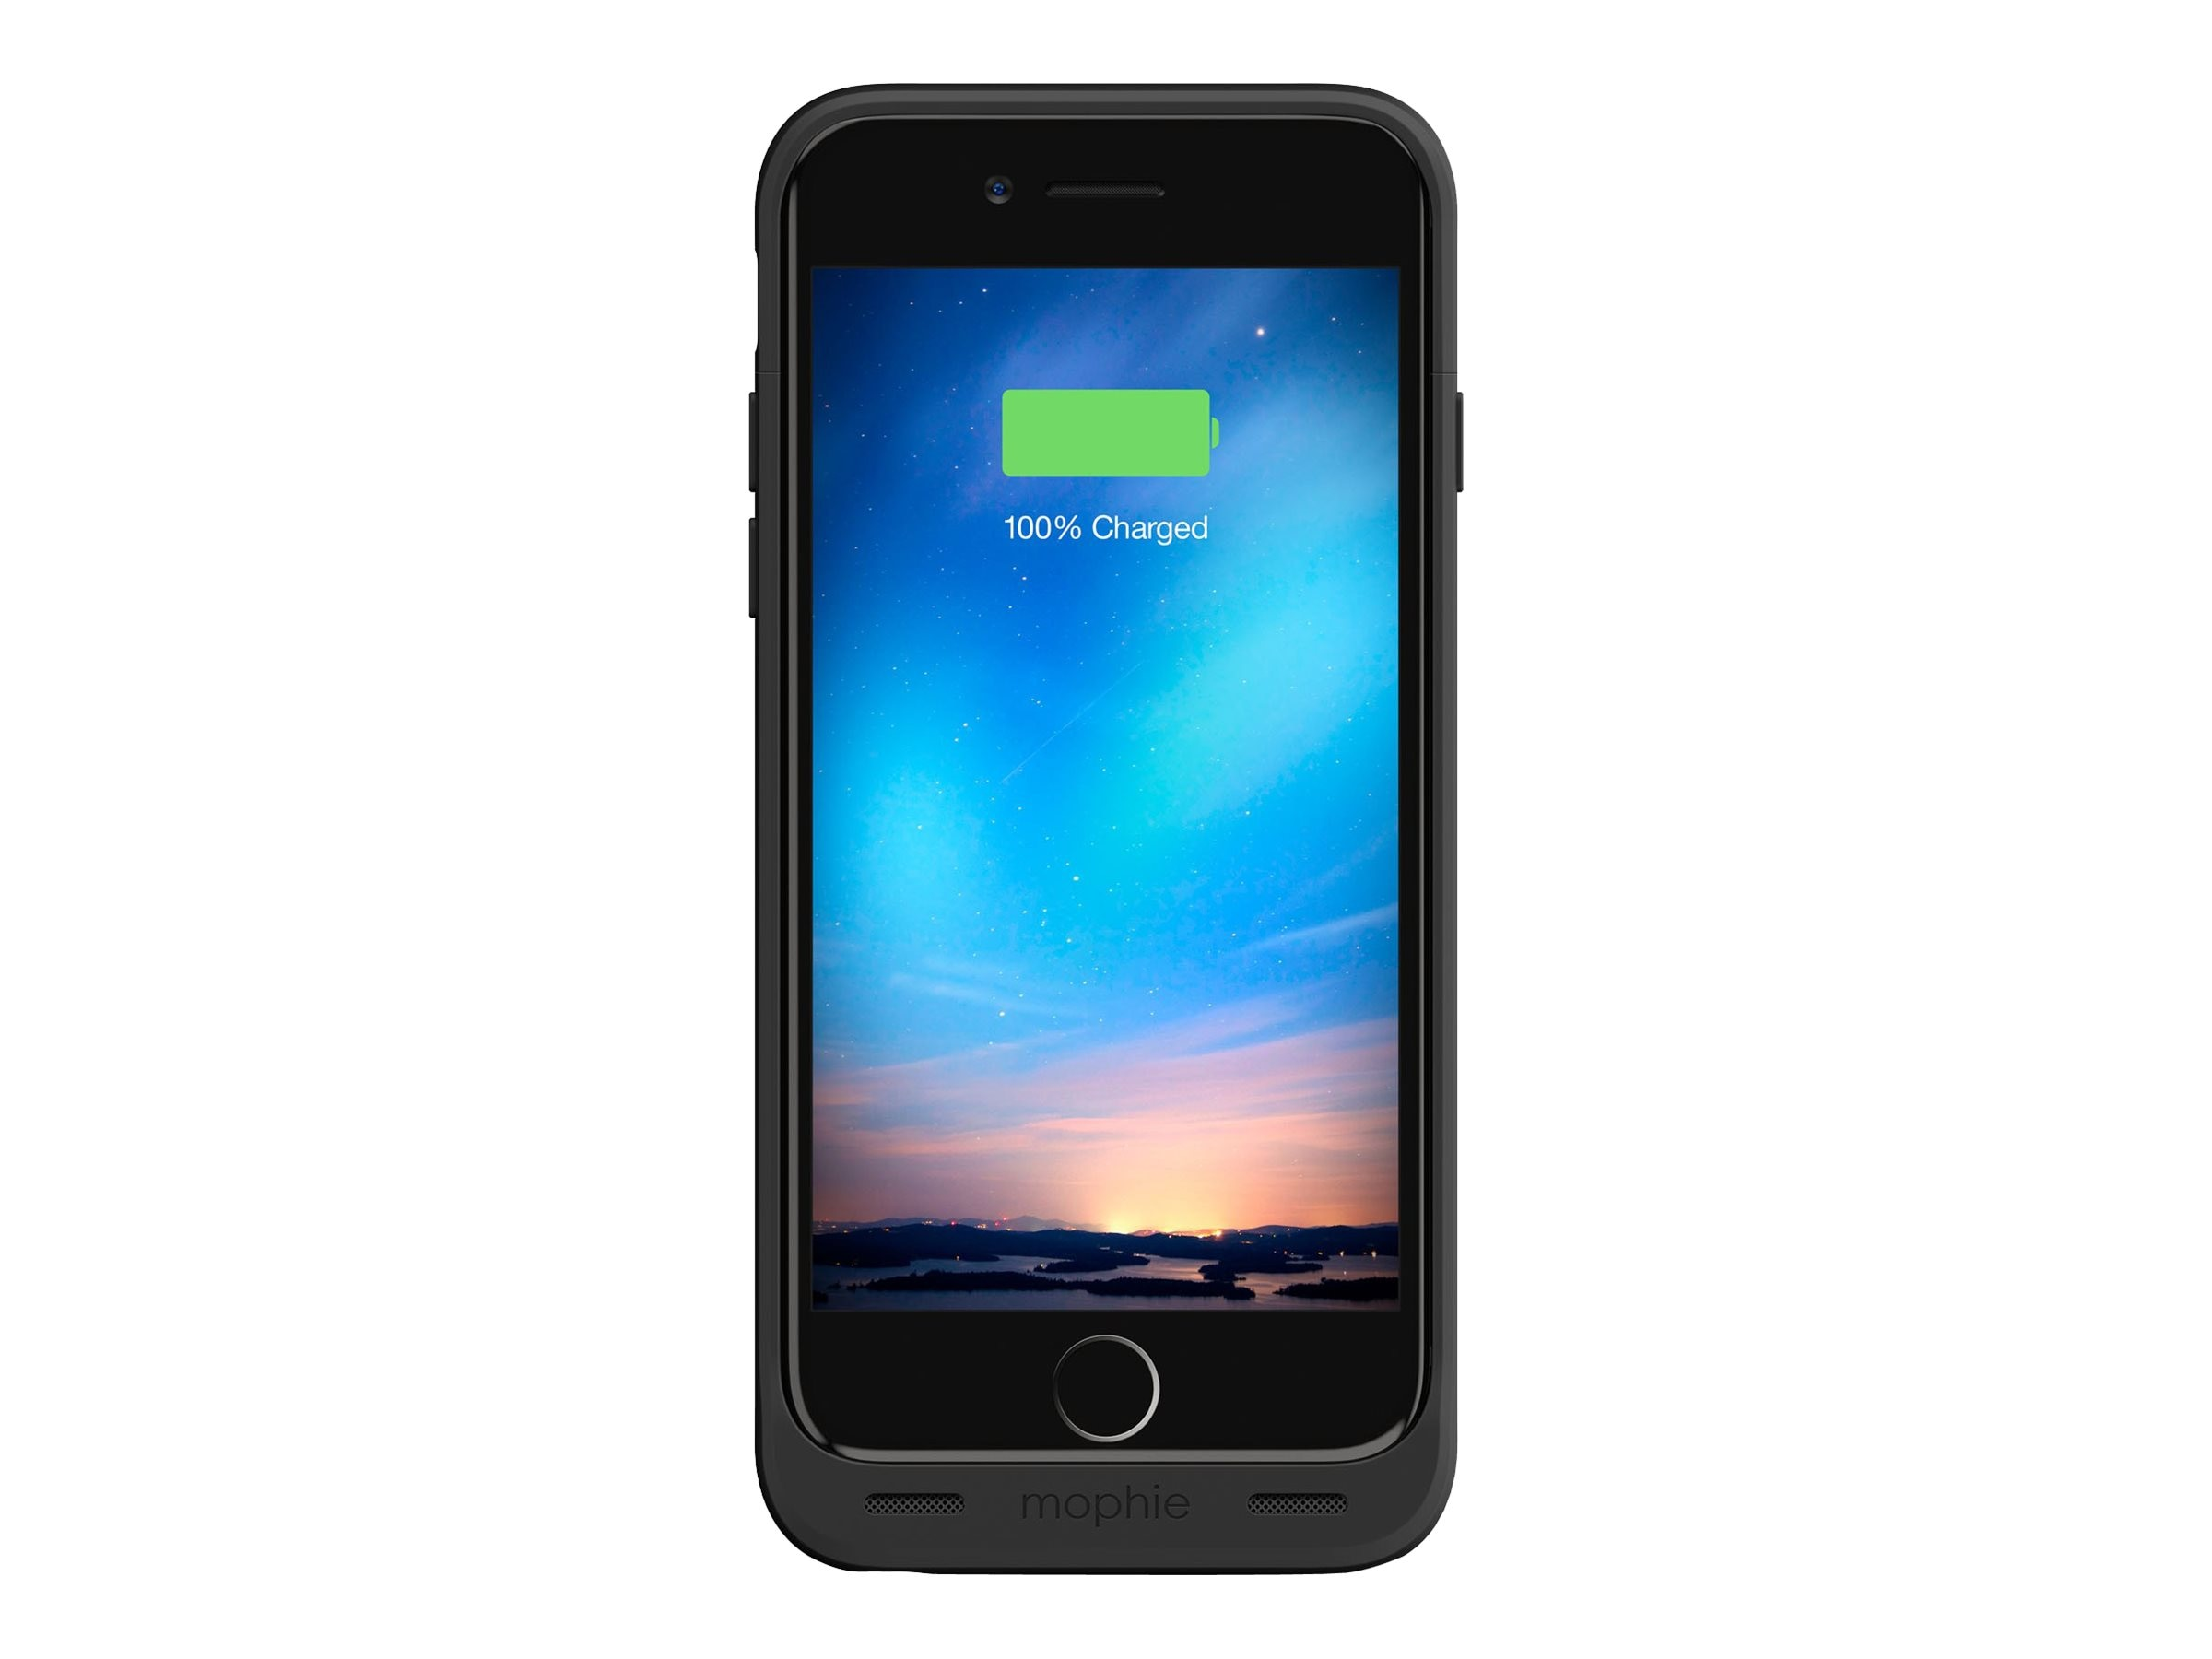 Mophie Juice Pack Reserve 1840mAh Battery for iPhone 6s 6, Black, 3353JPRIP6BLK